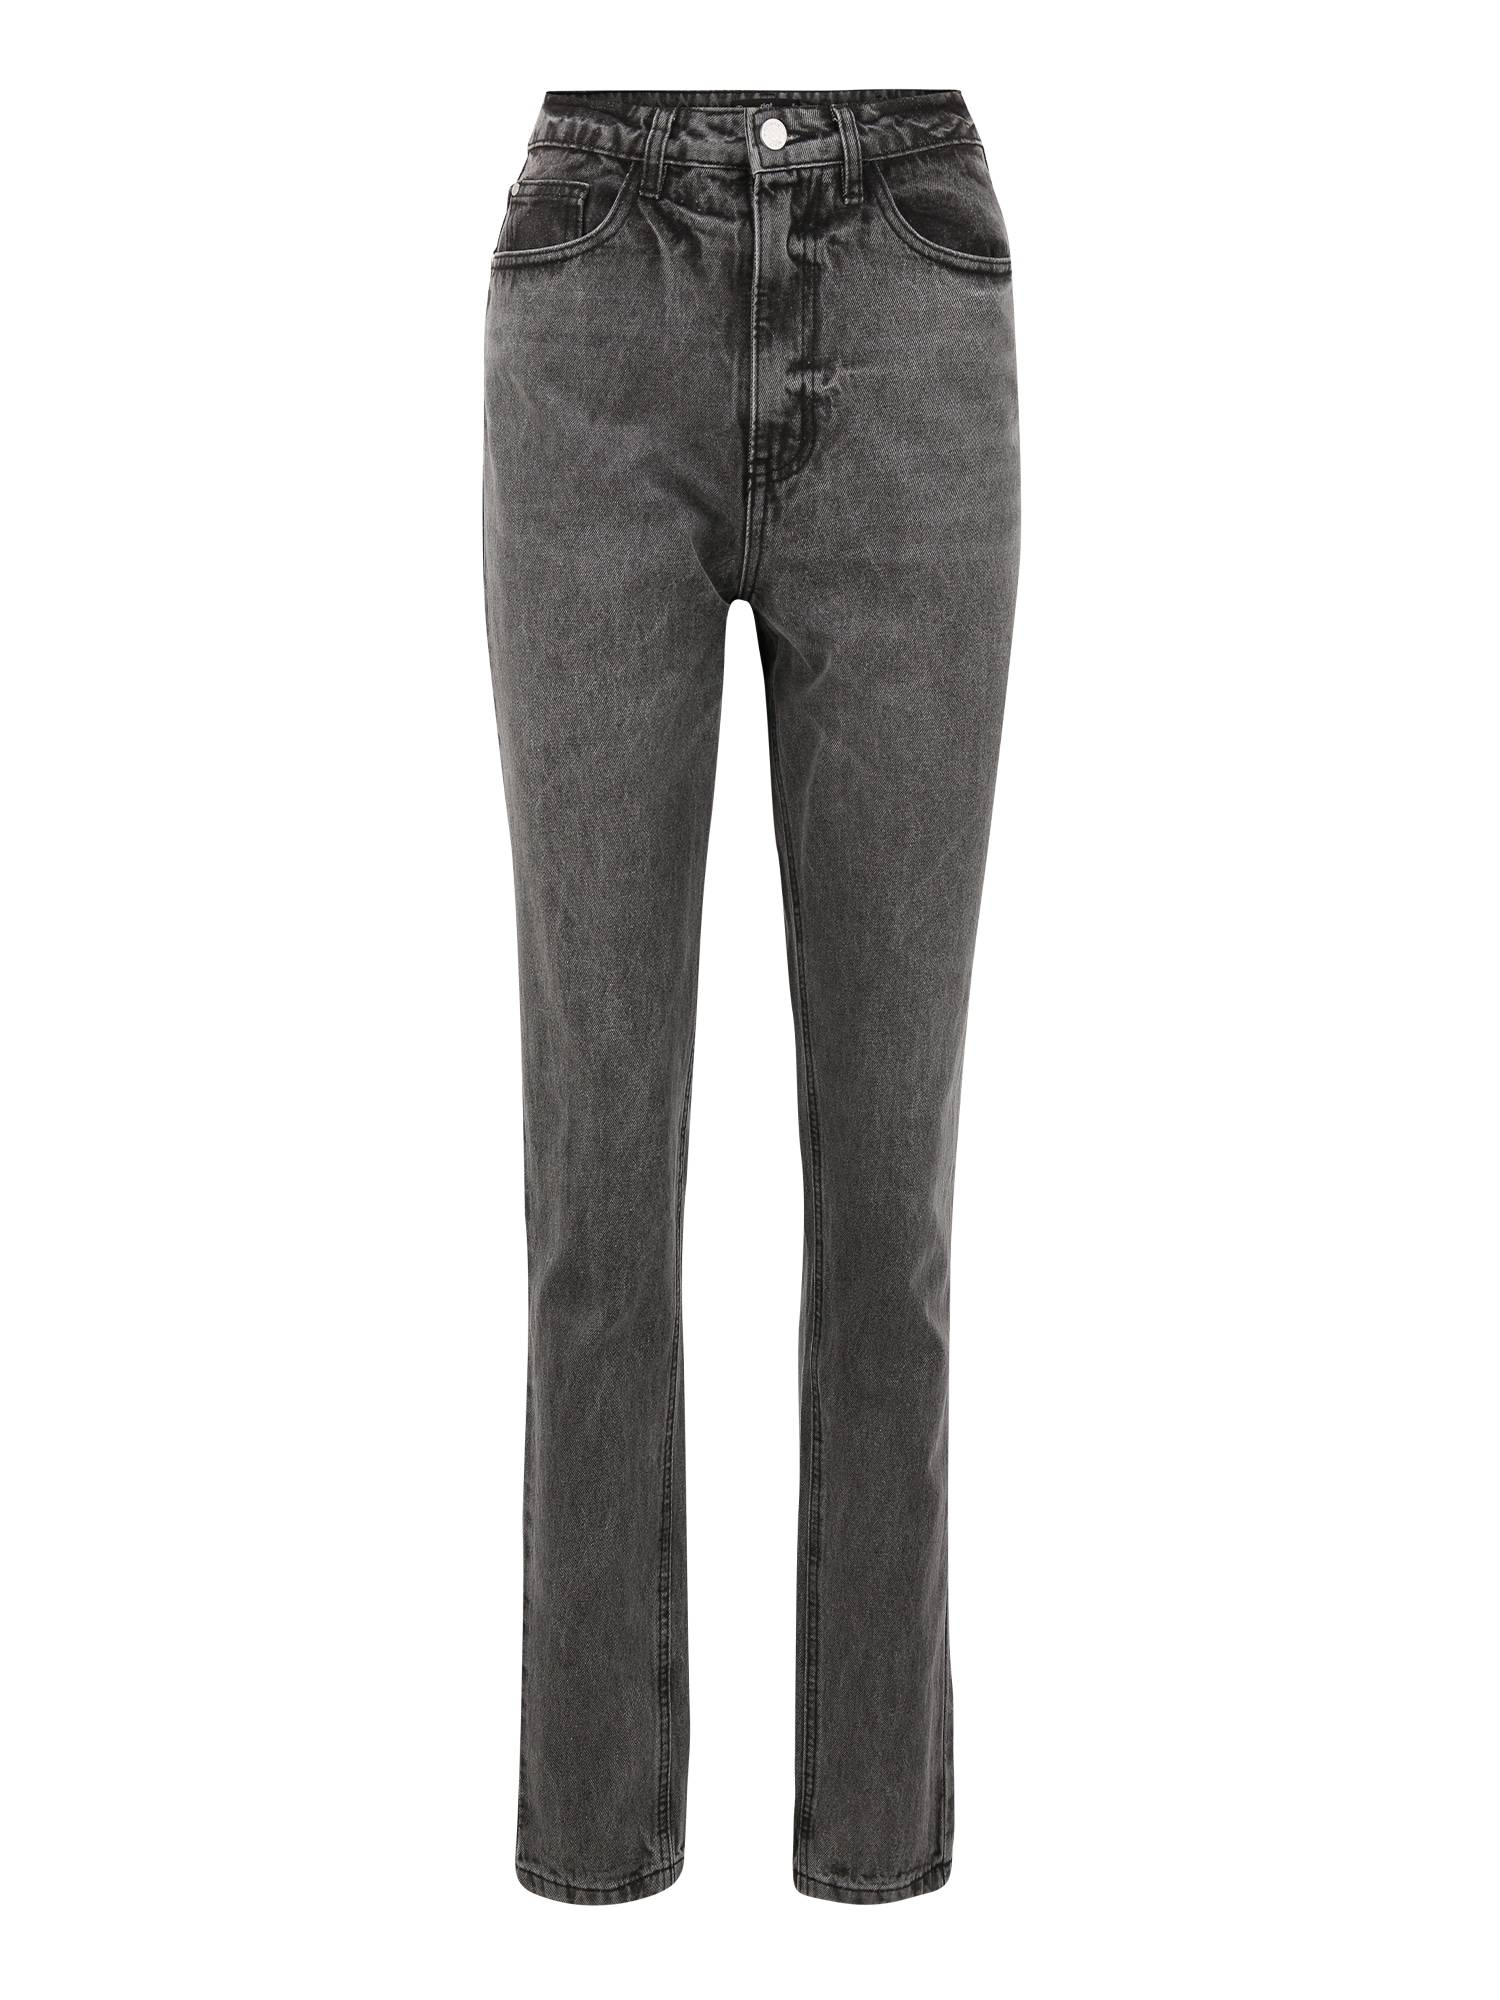 Missguided Tall Jean 'RIOT'  - Gris - Taille: 4 - female